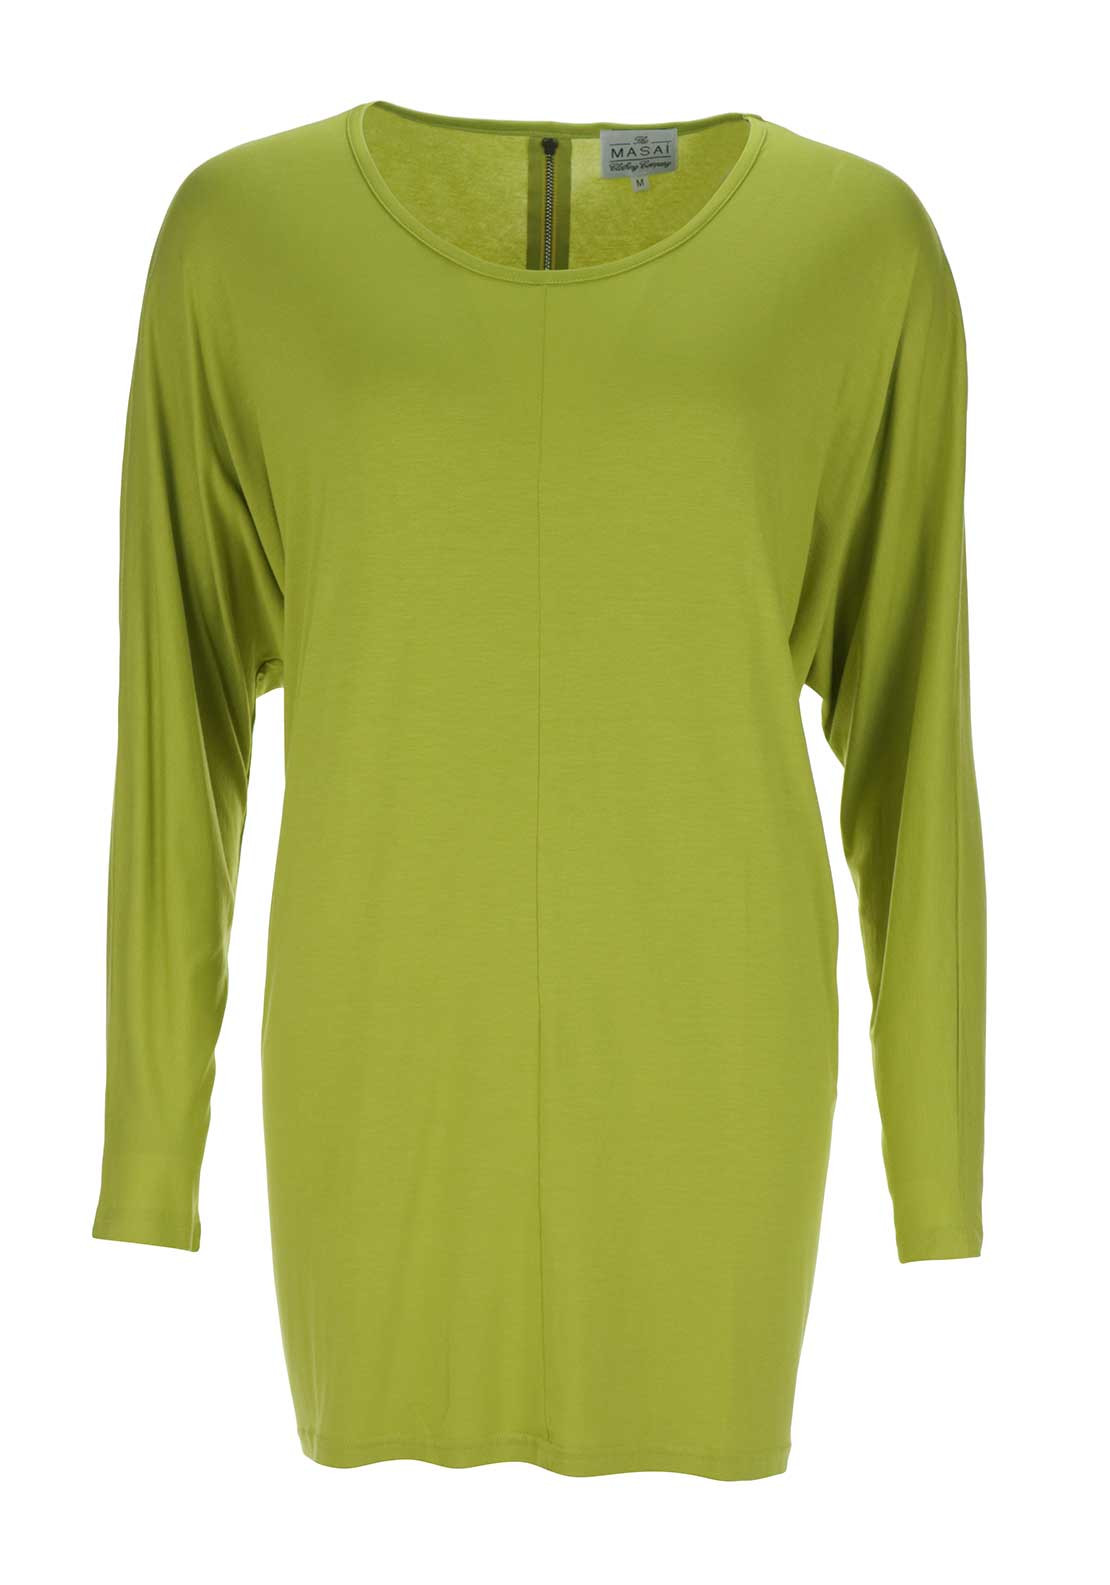 The Masai Clothing Company Dox Oversize Tunic Top, Lime Green